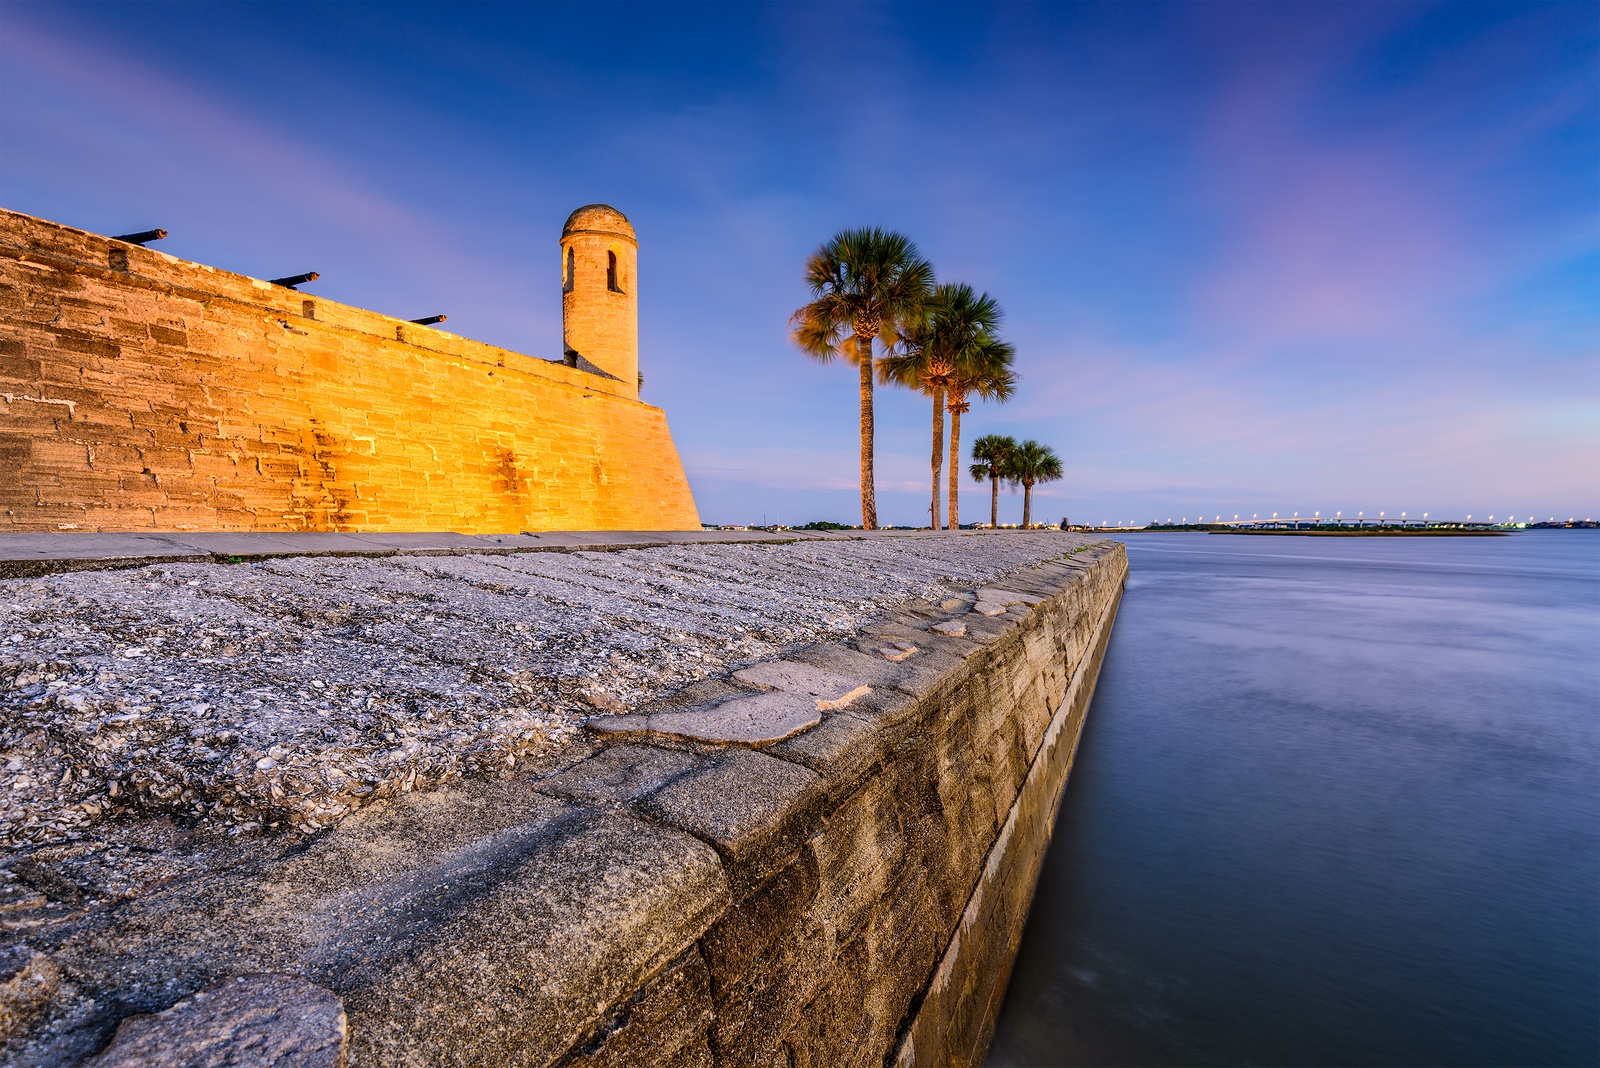 bigstock-St-Augustine-Florida-at-the--123125282.jpg